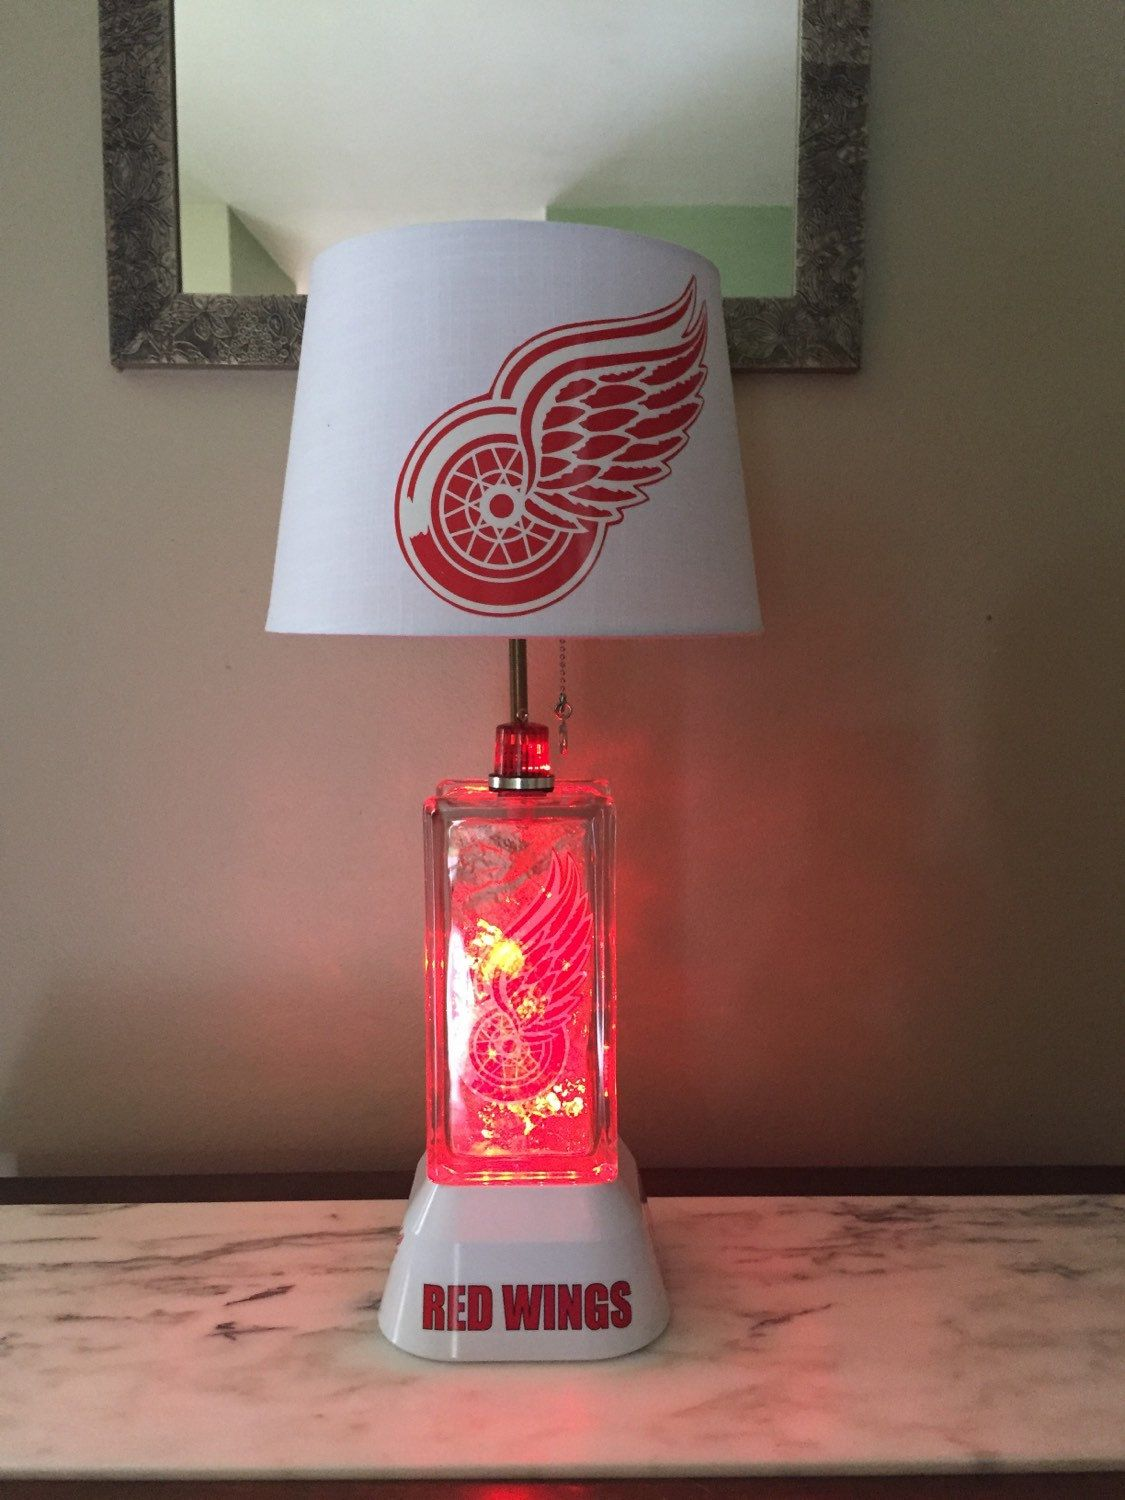 Detroit redwings Electric Lamp, Electric night light with